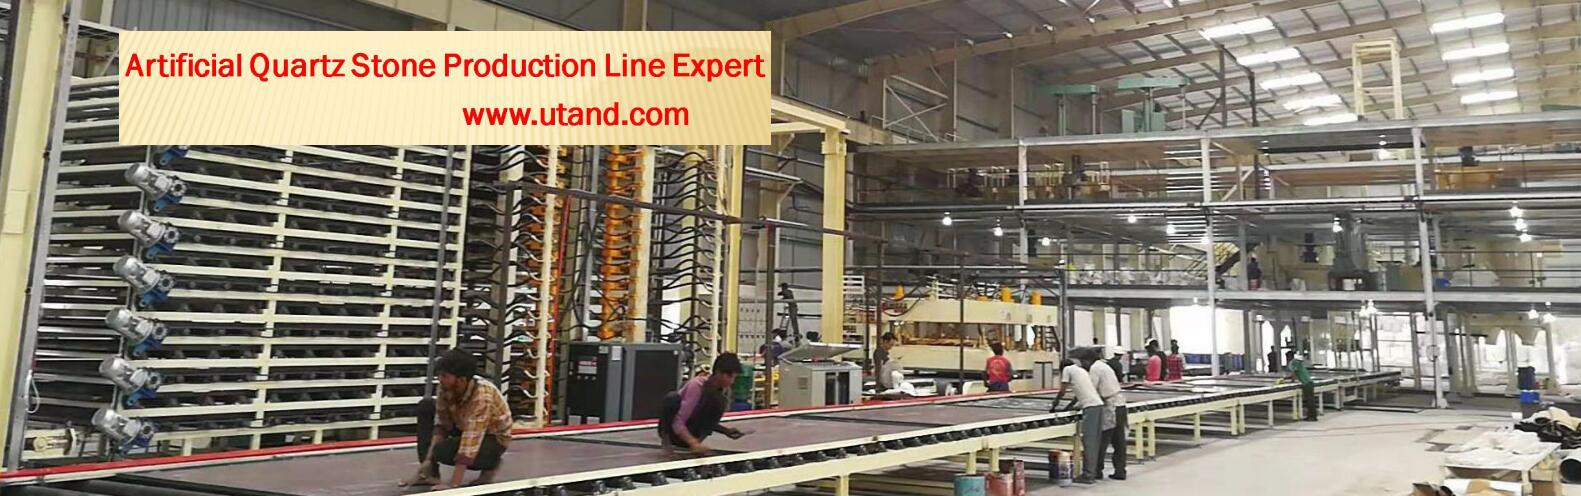 Utand stone machinery banner